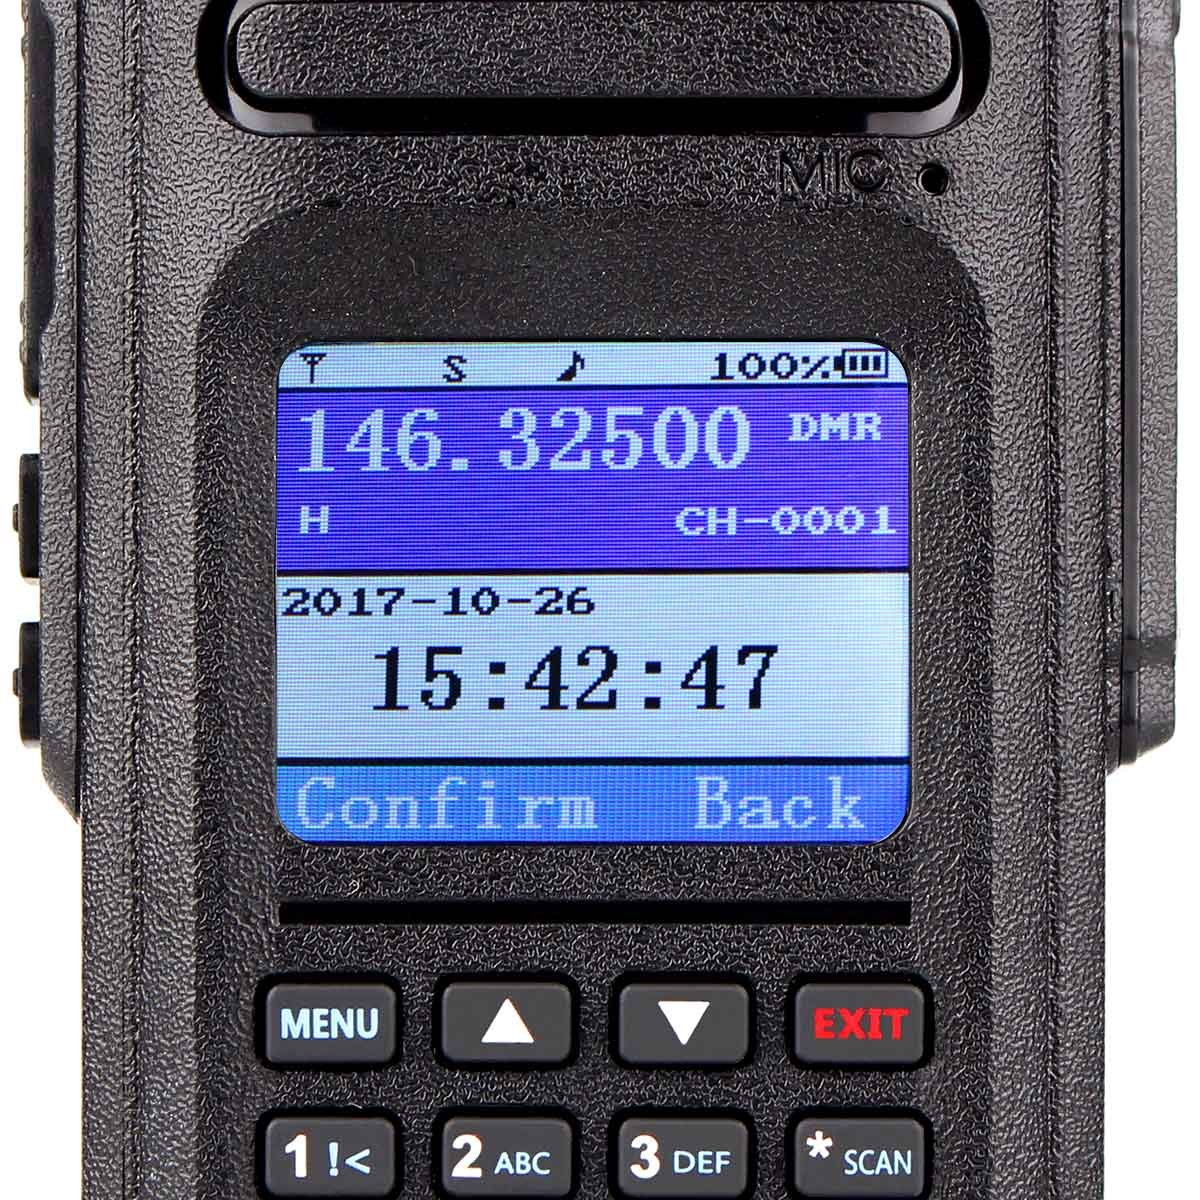 Ailunce HD1 DMR Digital Ham Radio Dual Band Dual Time Slot 10W 3000Channels 100000 Contacts 3200mAhz Waterproof long Range Two Way Radio with FM Function and Programming Cable(Black,1pack) by Ailunce (Image #4)